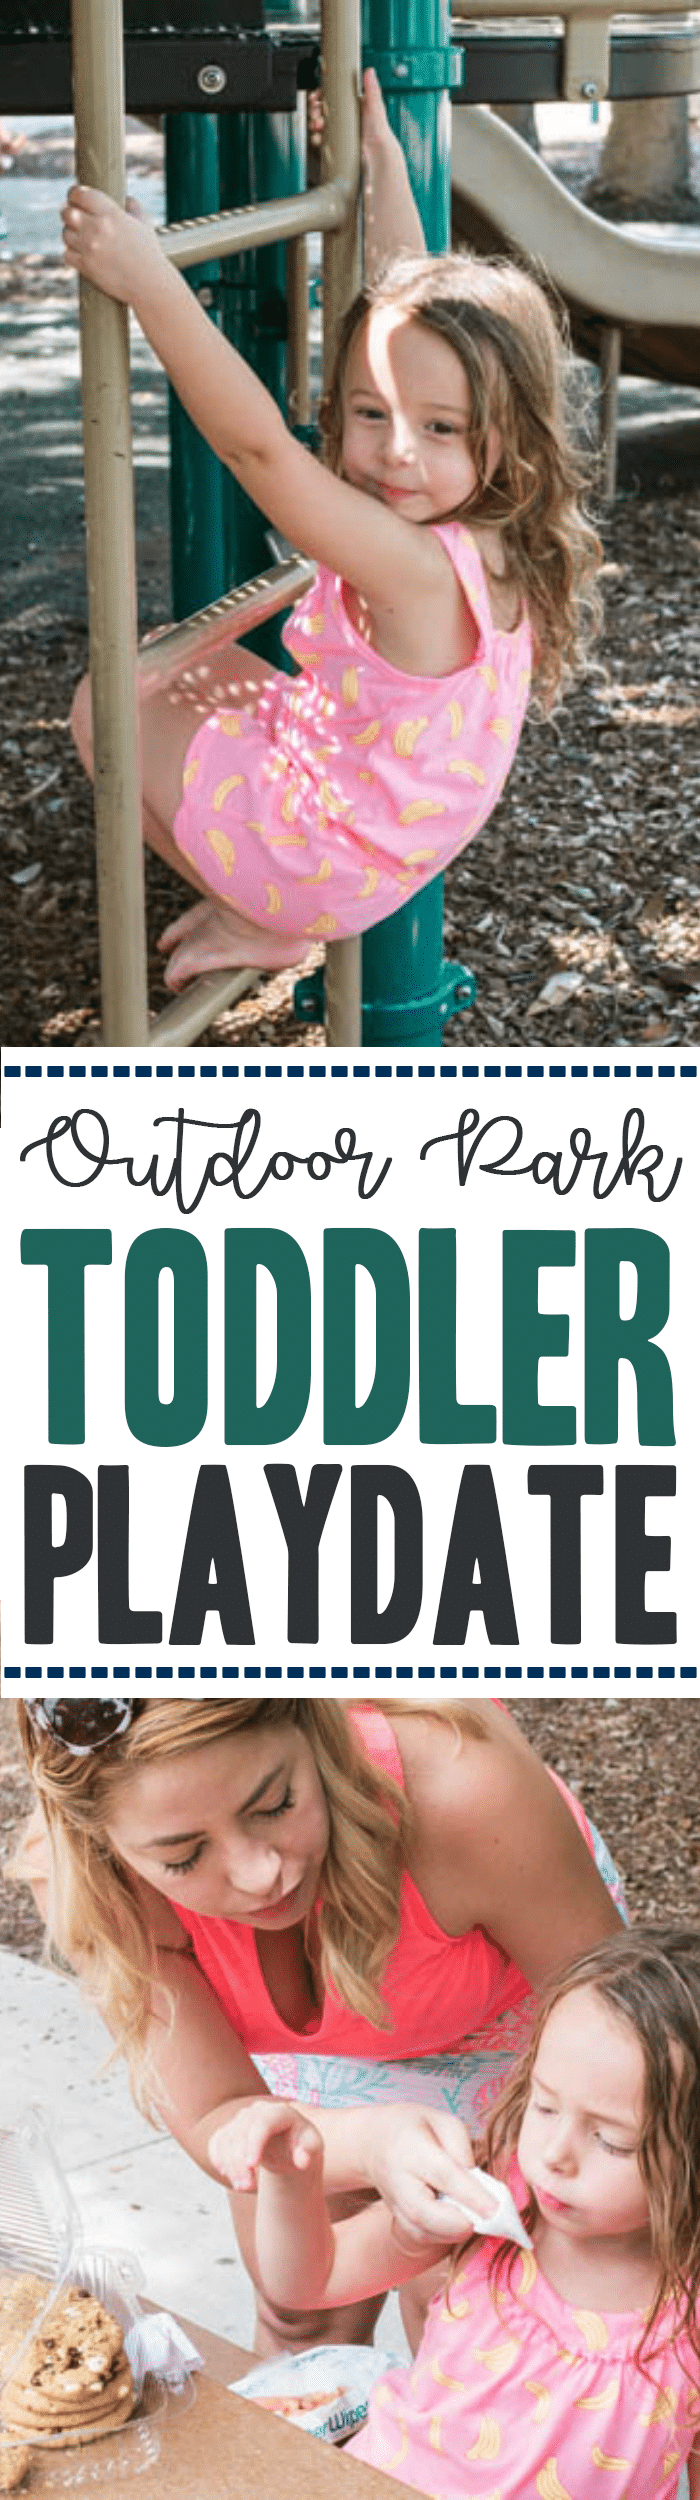 outdoor-park-toddler-playdate